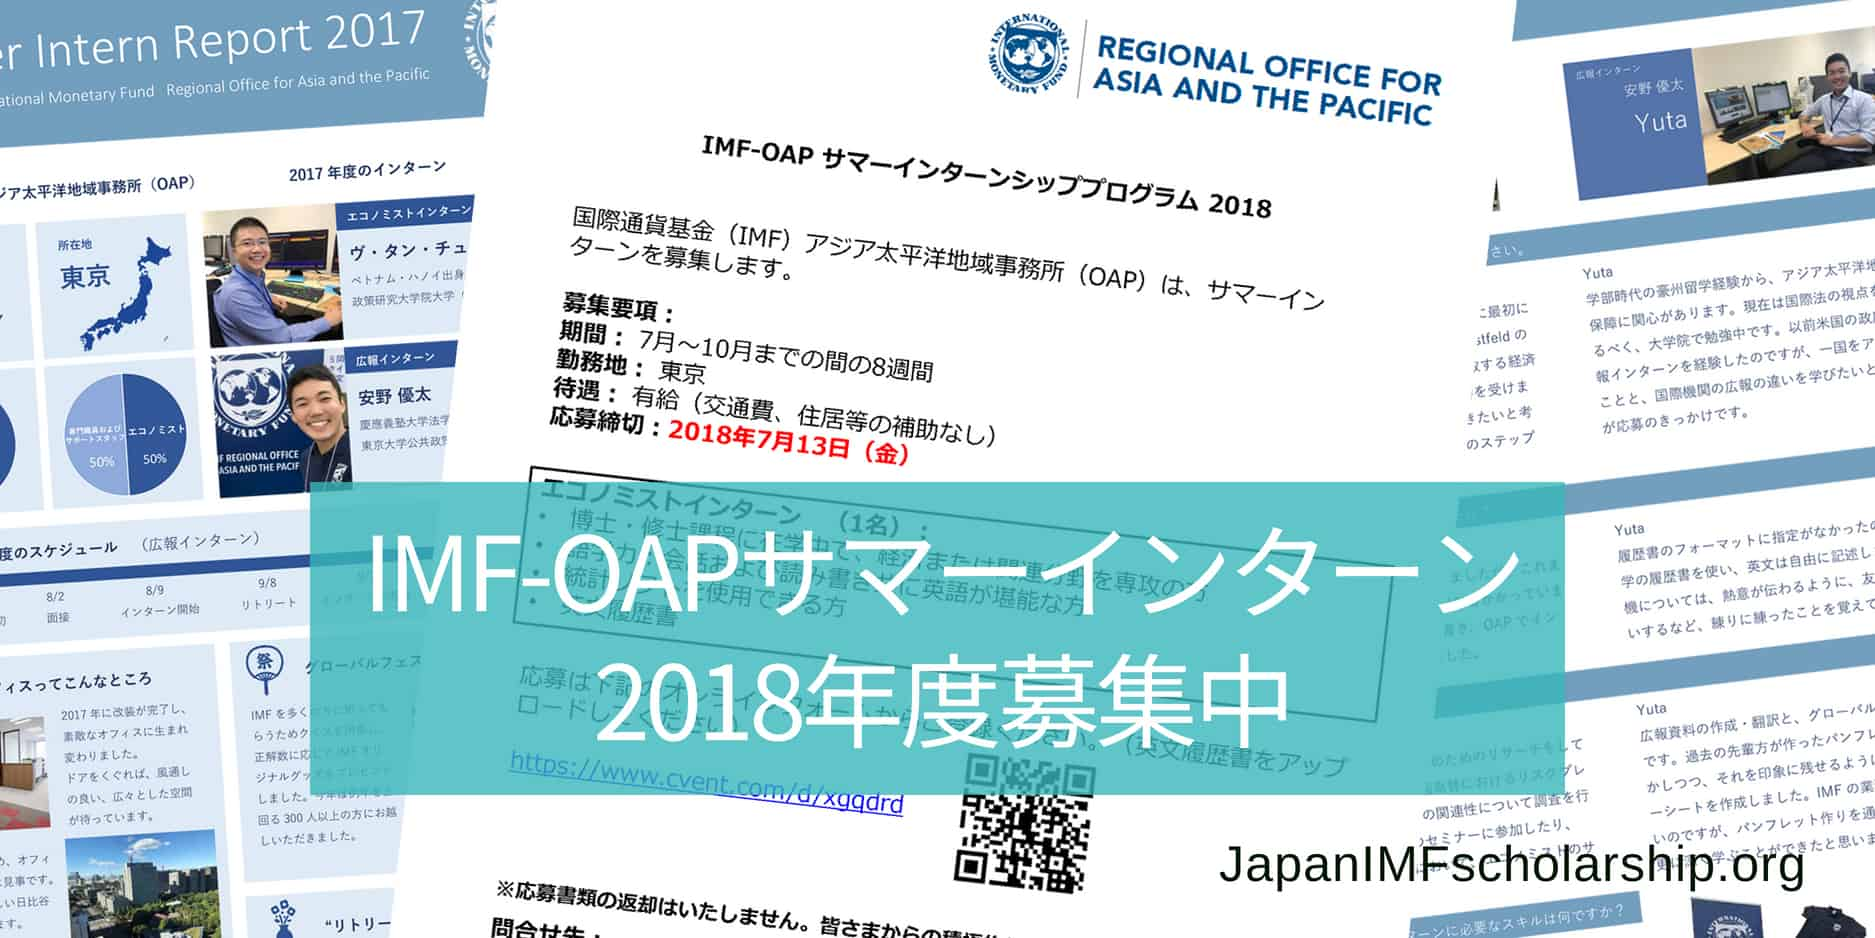 jisp web-fb imf-oap summer internship program 2018